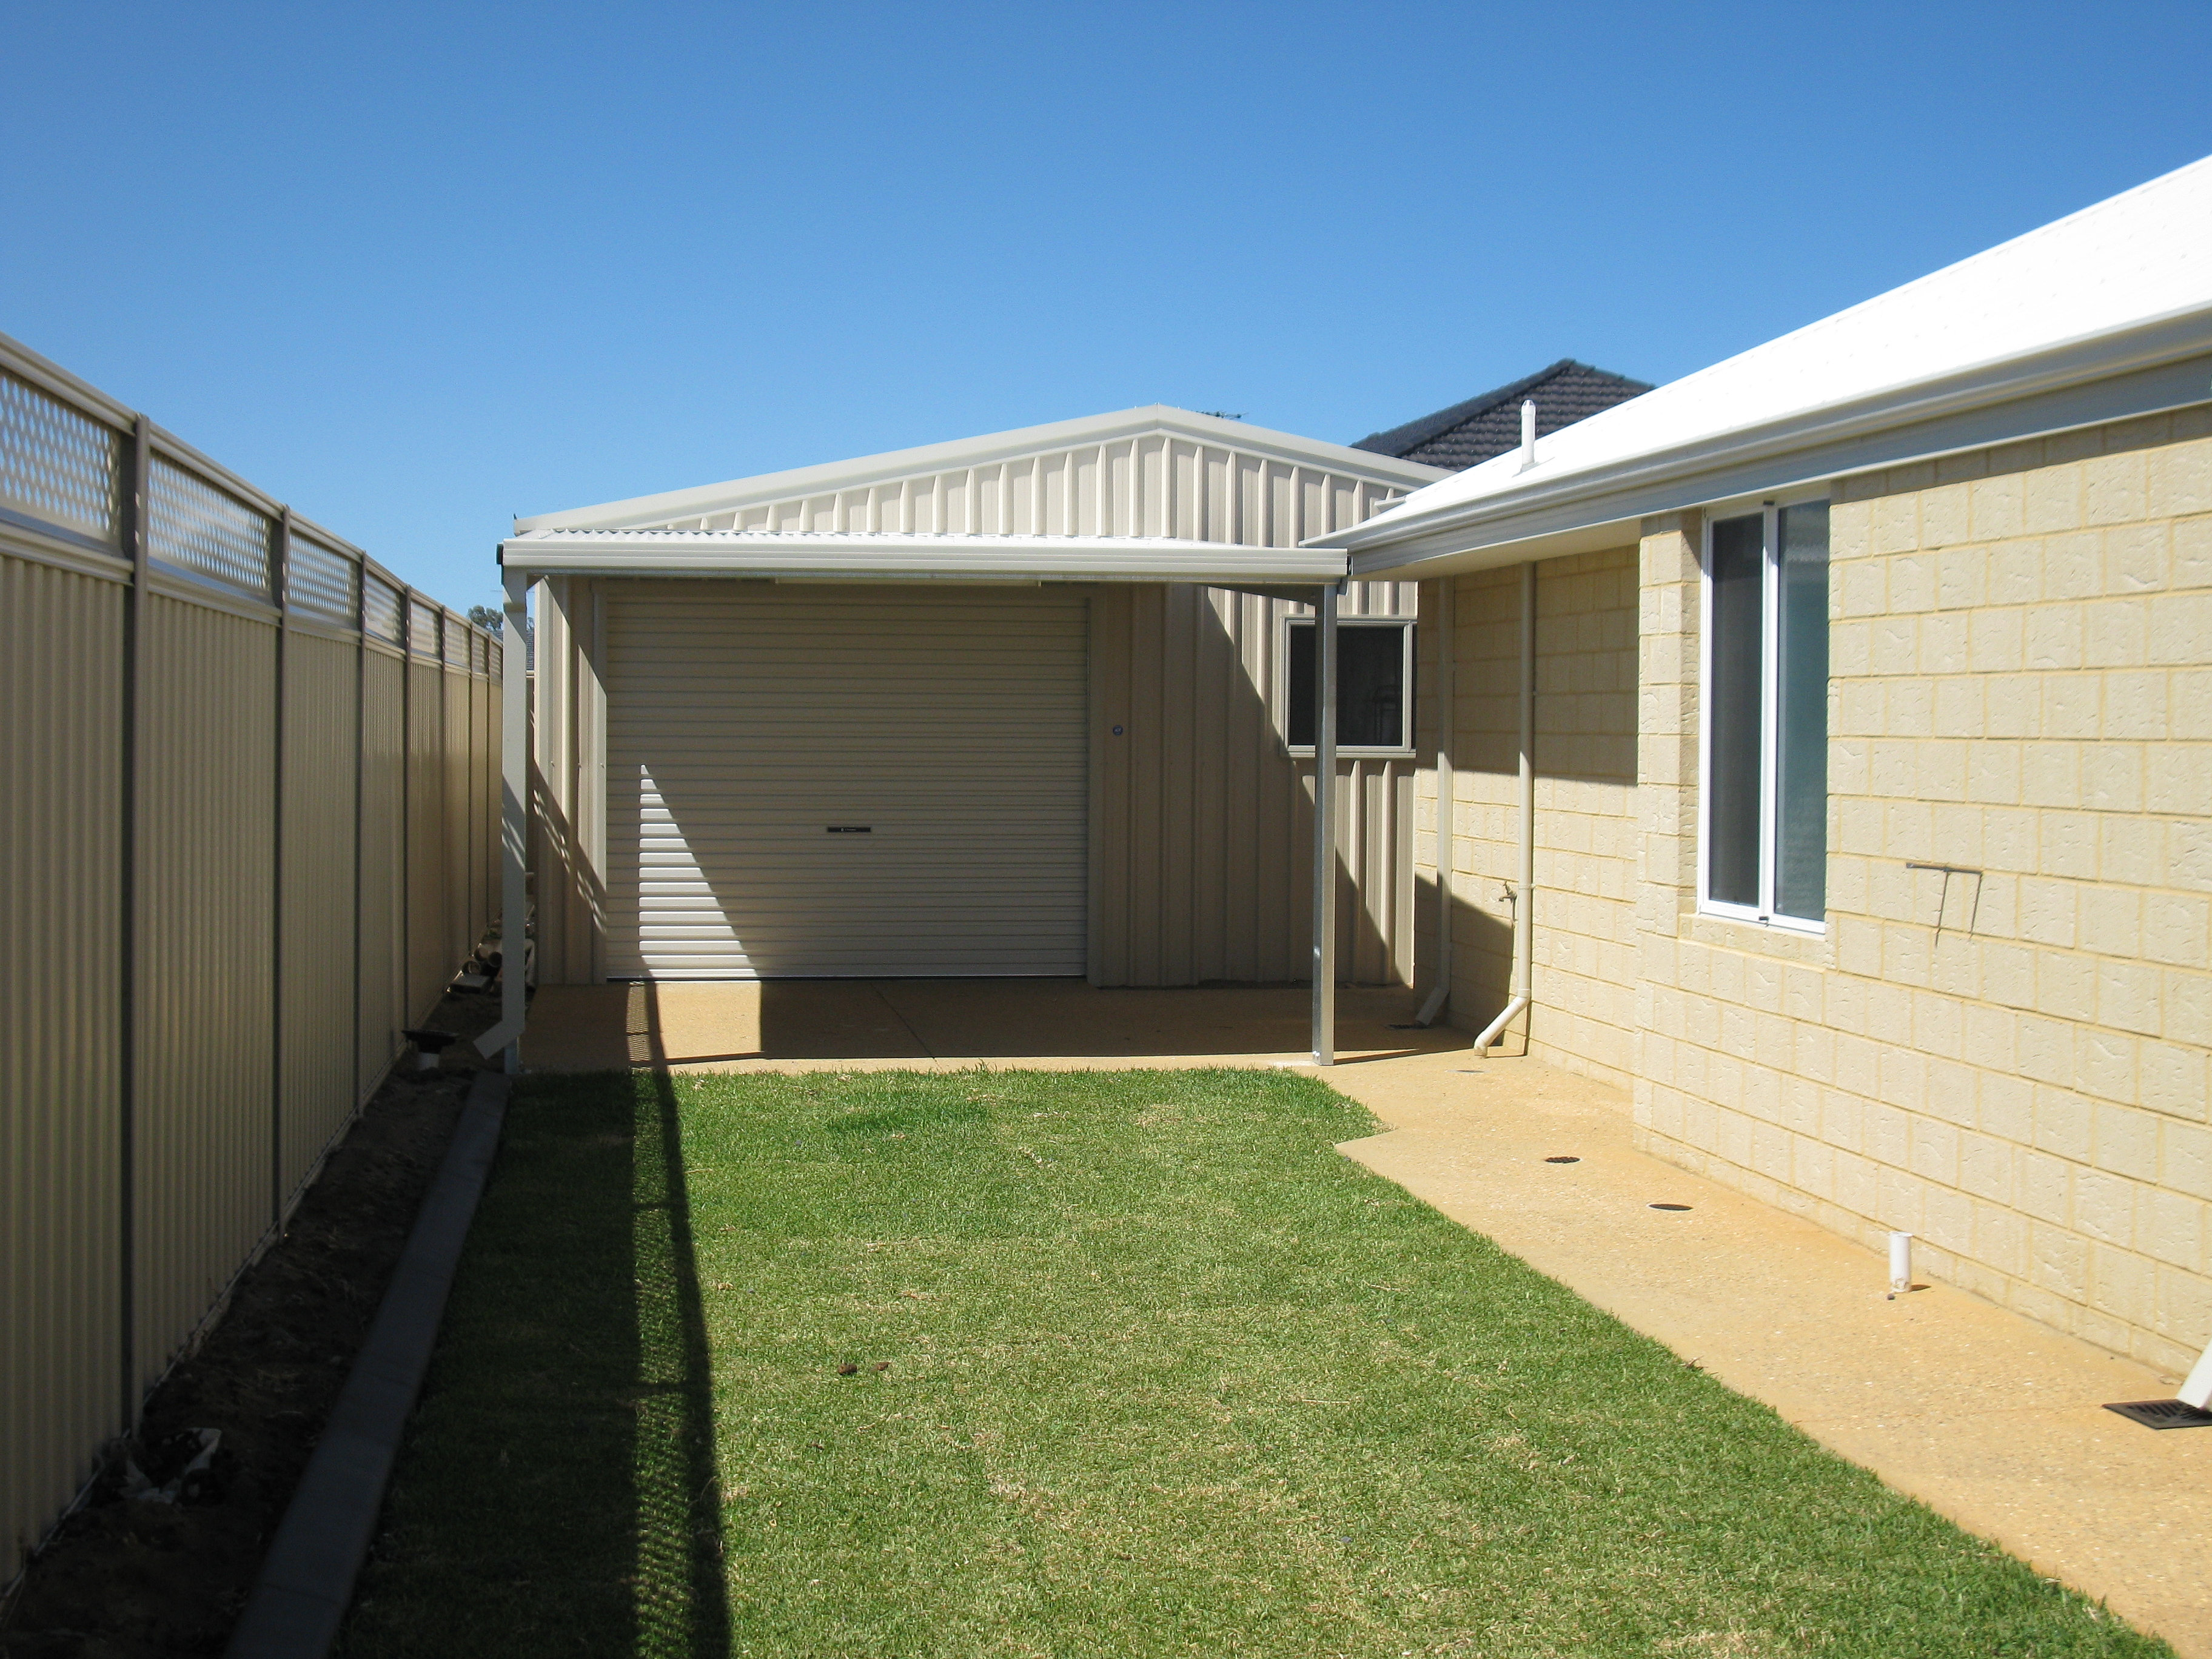 Perth Sheds Western Sheds Amp Garages Garage With Lean To